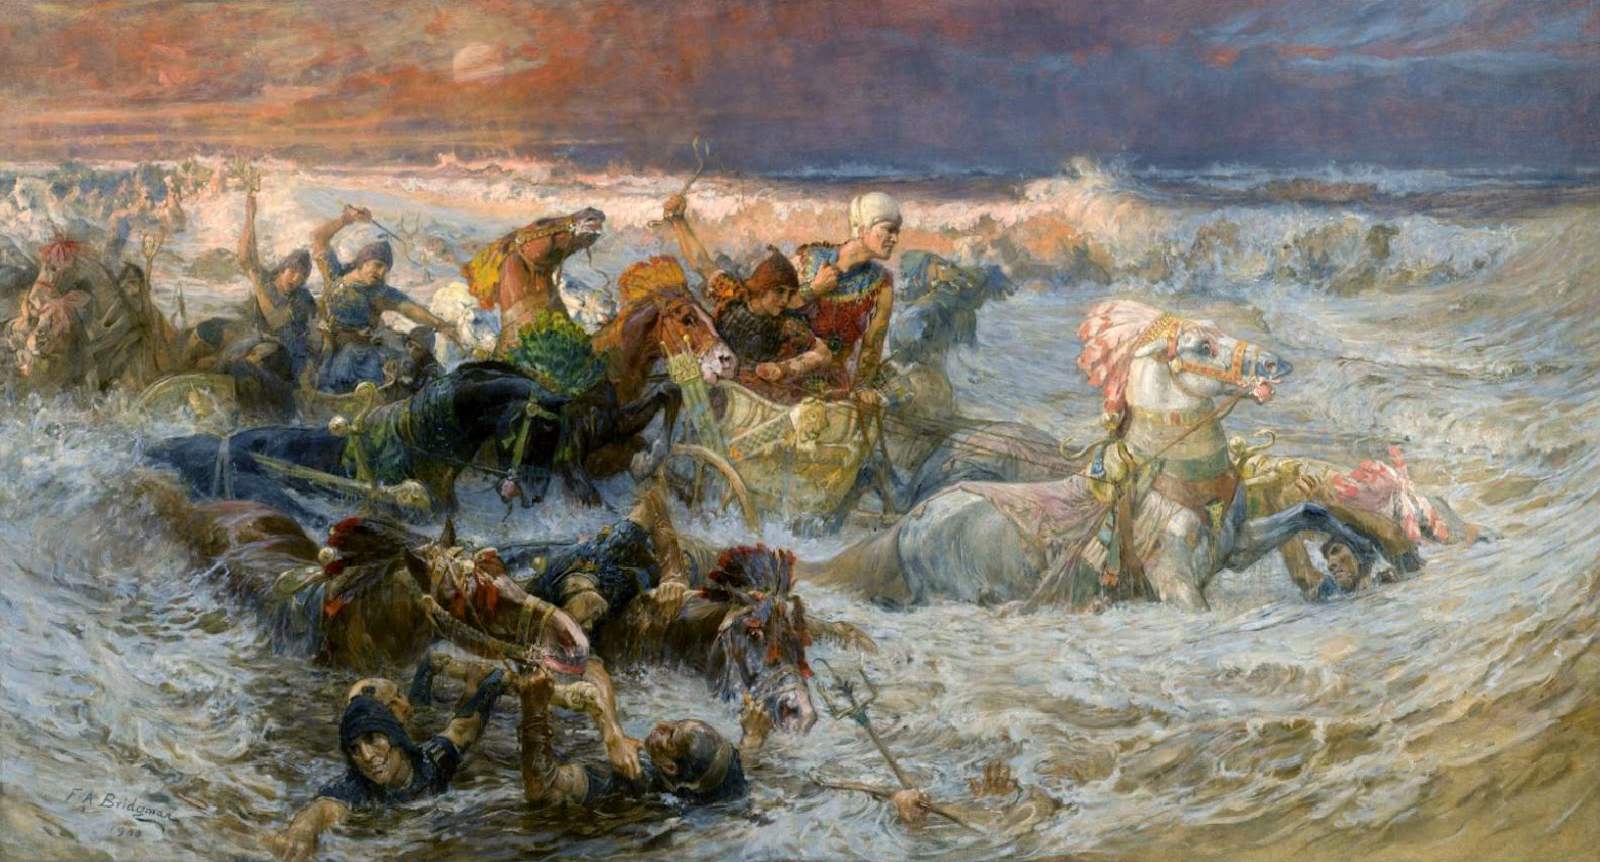 Frederick+Arthur+Bridgman+-+Pharaoh's+Army+Engulfed+by+the+Red+Sea